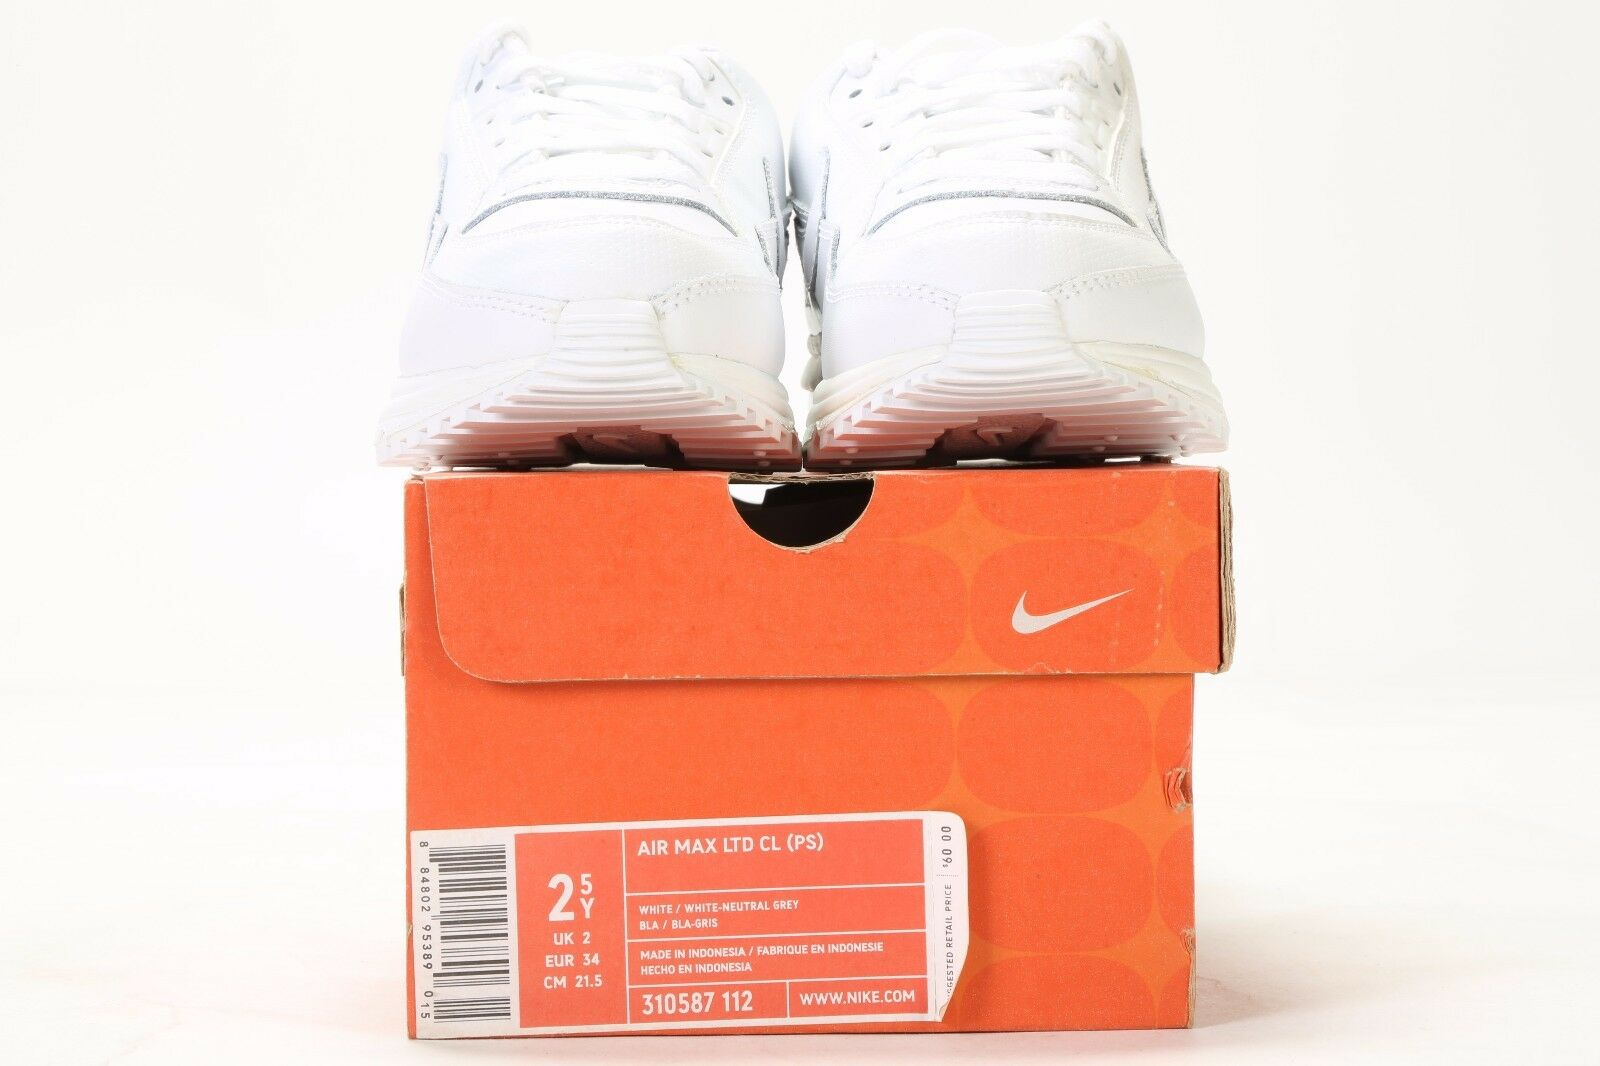 PS msrp: $60 310587-112 WHITE//NEUTRAL GREY VINTAGE 2006 NIKE AIR MAX LTD CL